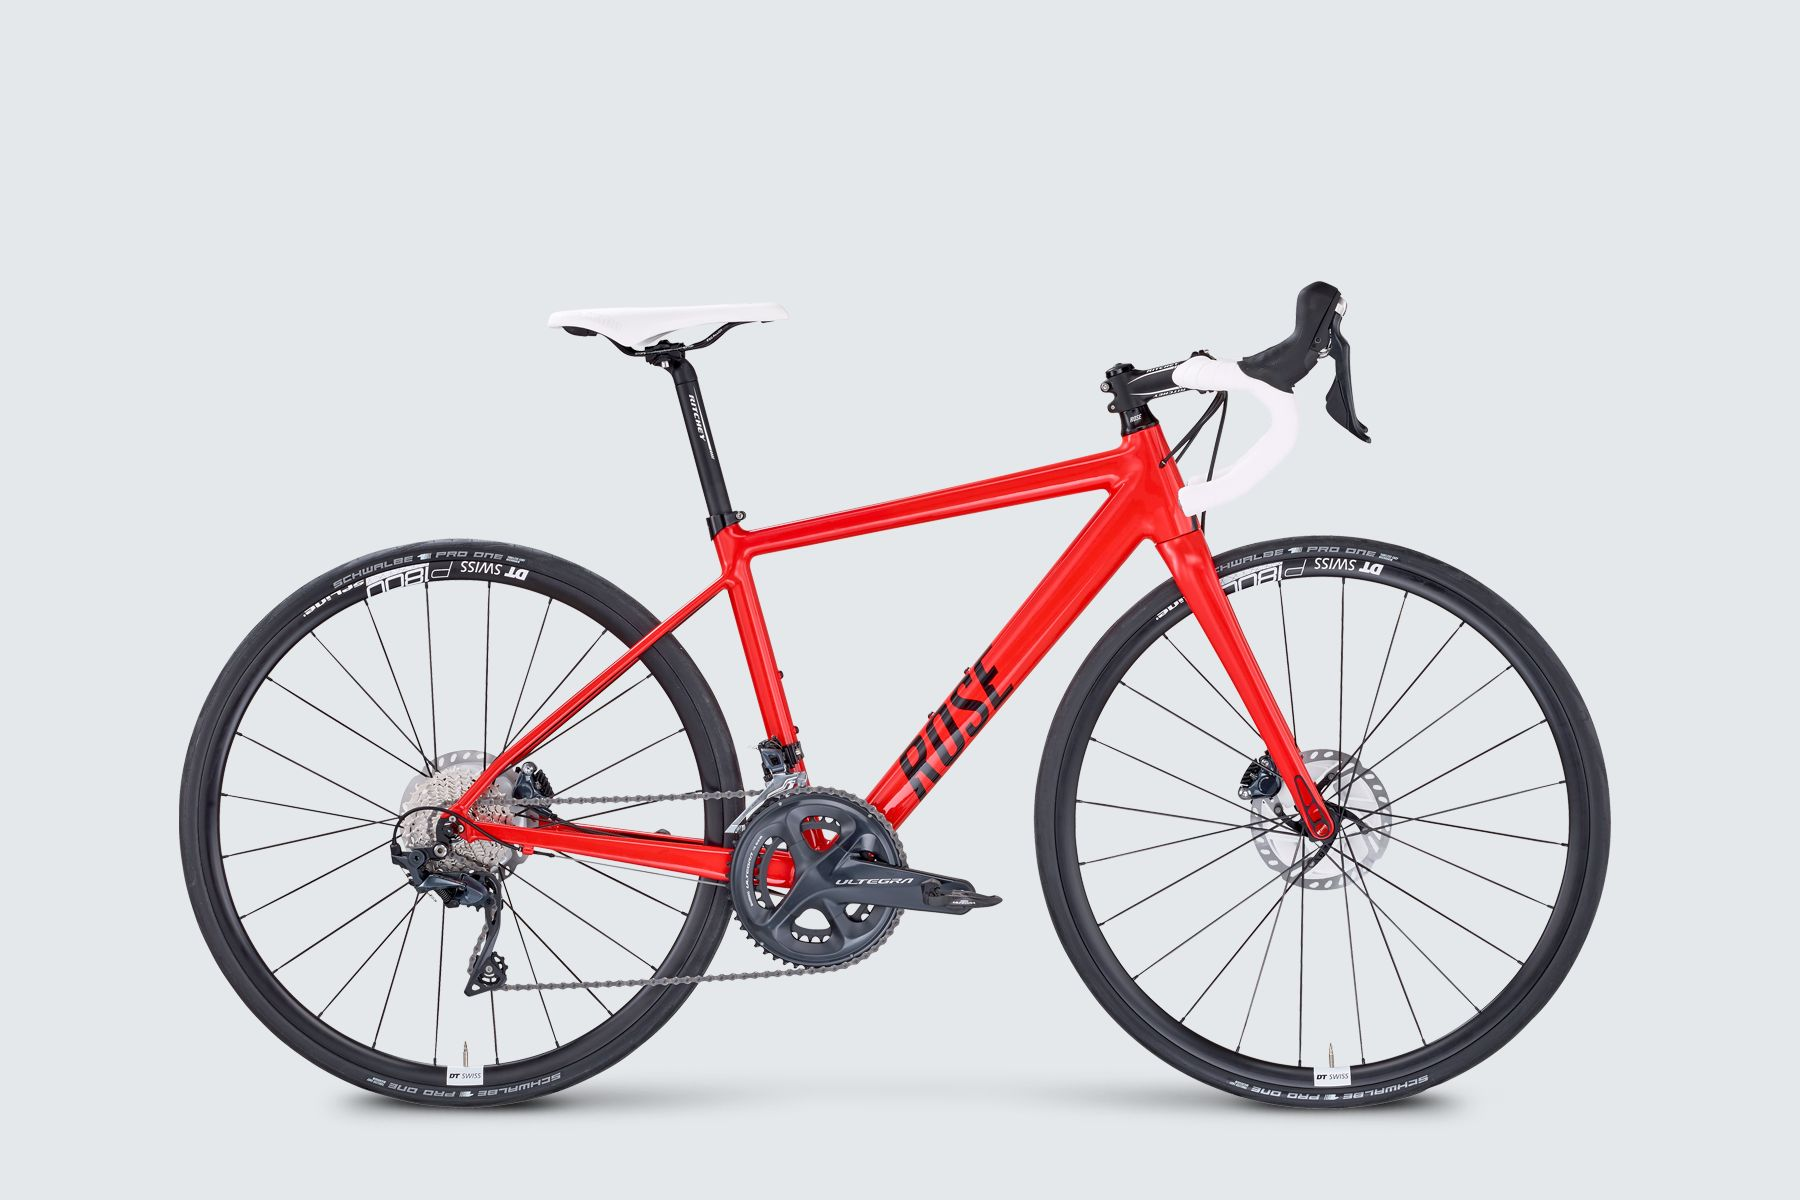 PRO SL DISC LADY Ultegra BIKE NOW!